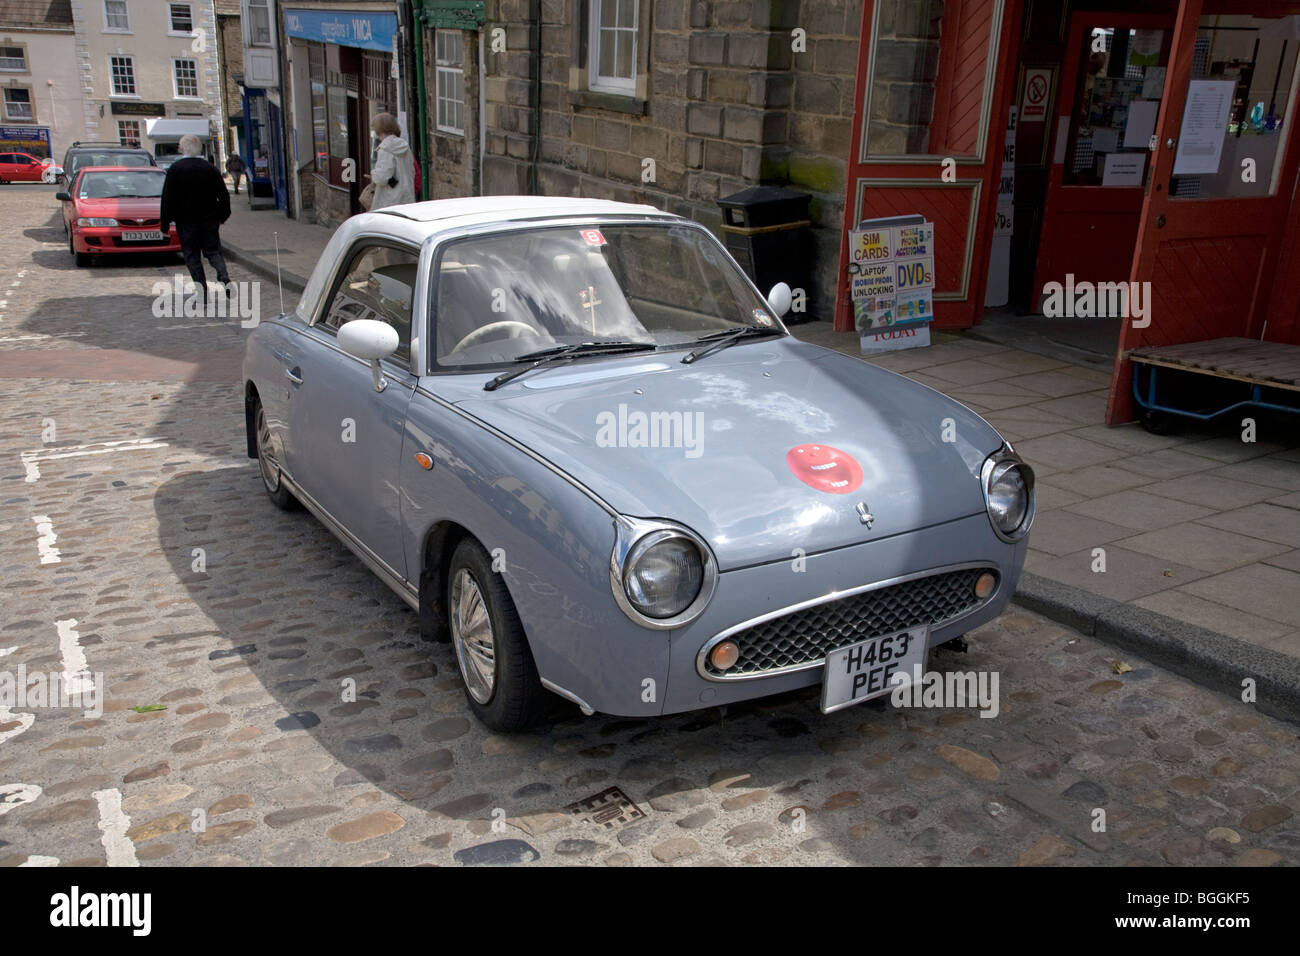 Richmond United Kingdom England GB Nissan Figaro retro styled car auto automobile - Stock Image